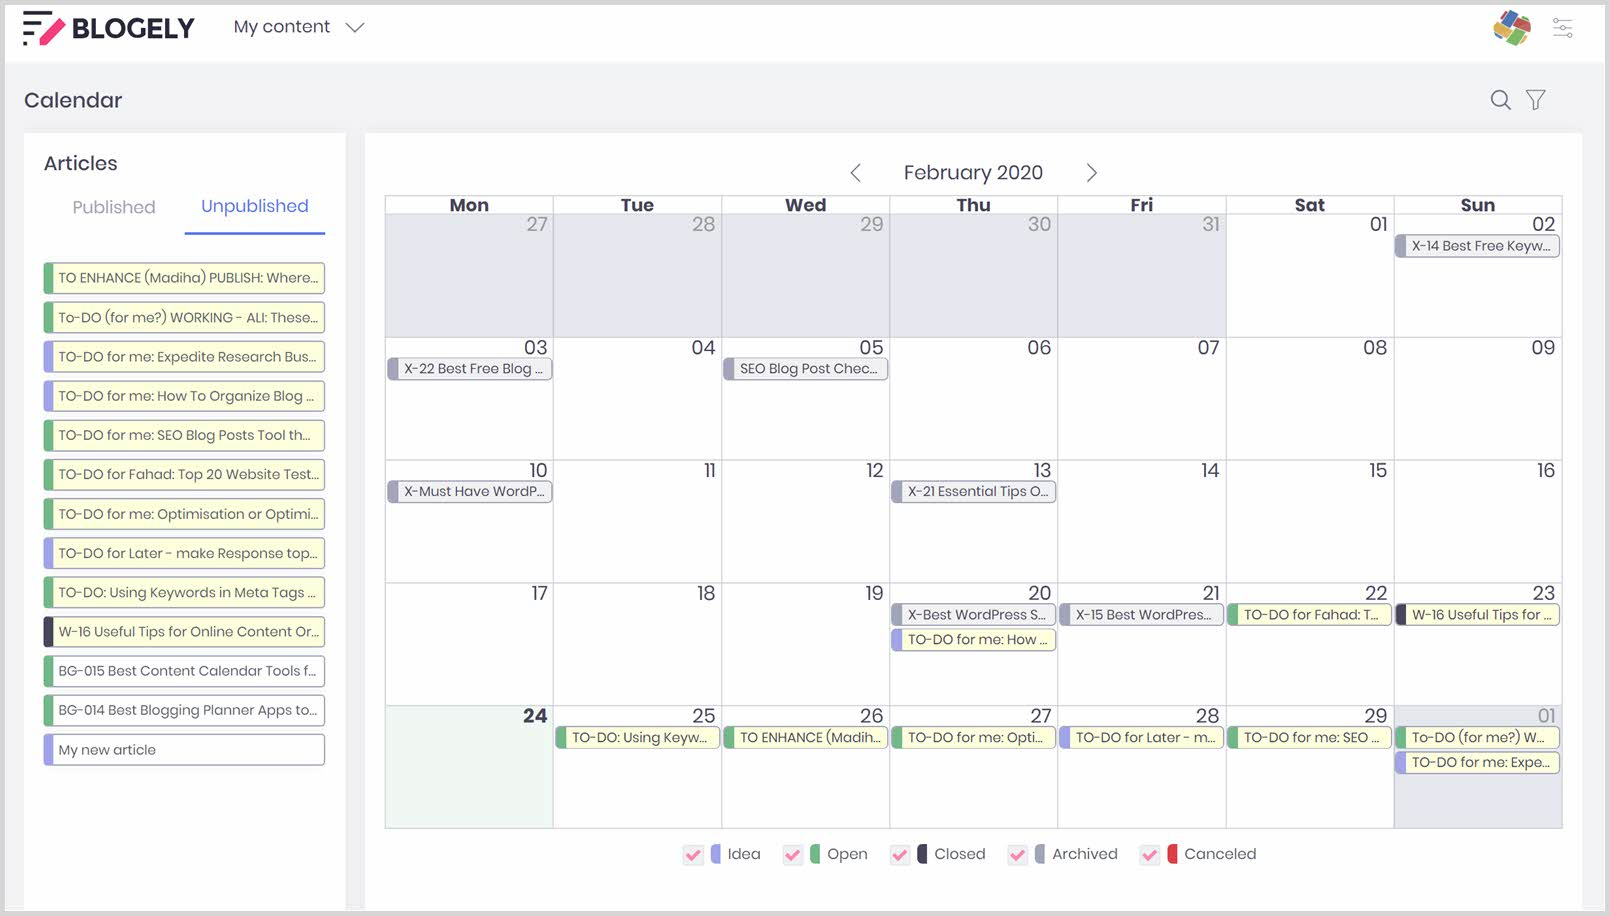 online content organization and content creation calendar